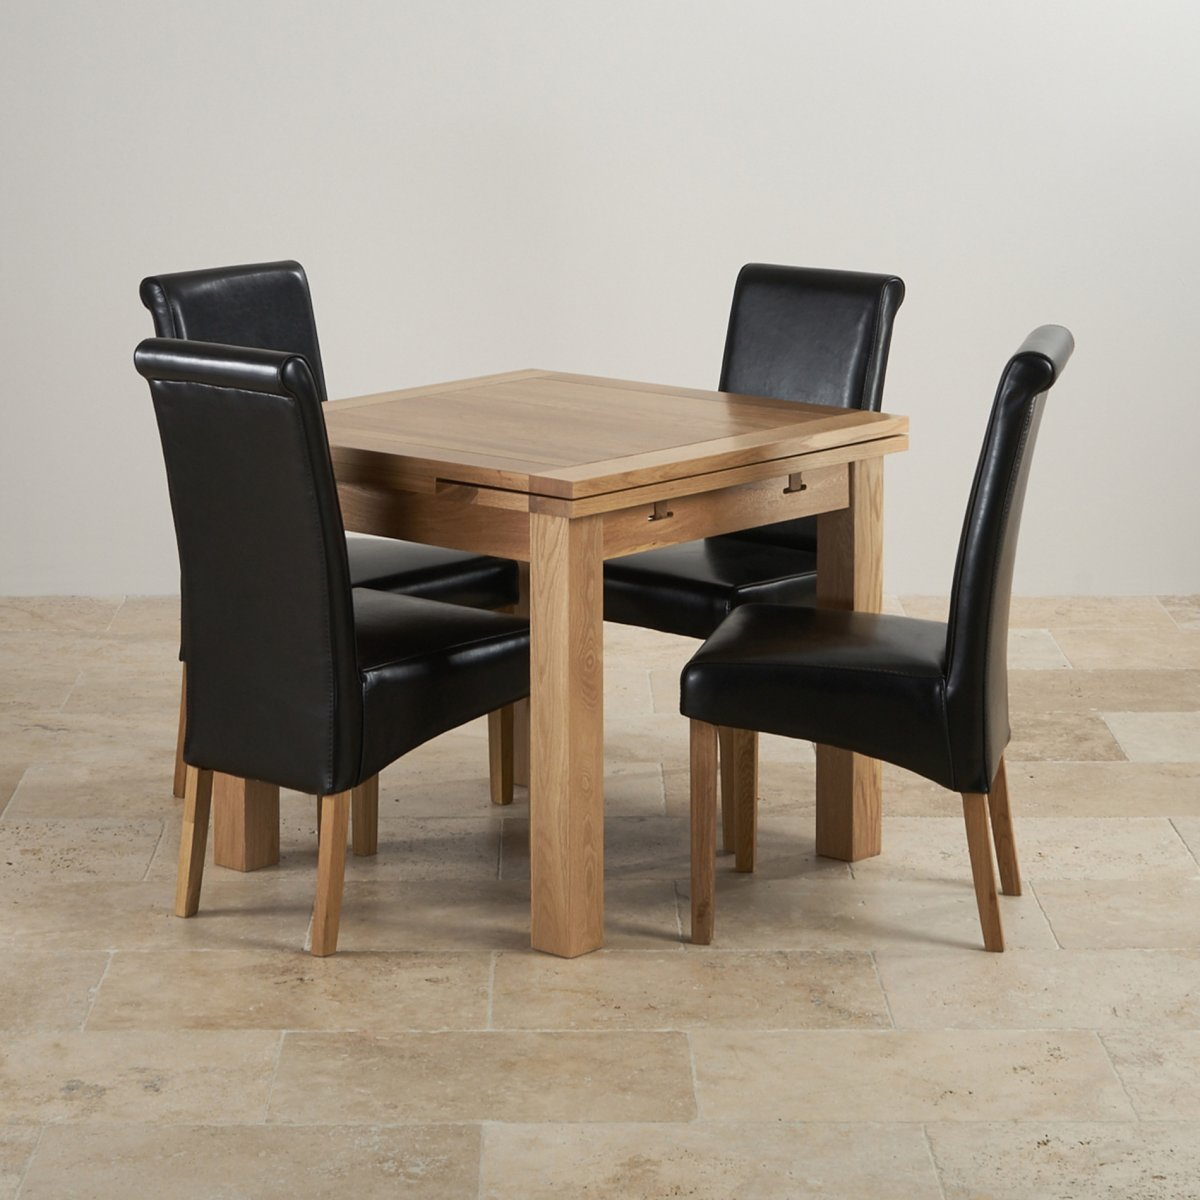 Dorset Dining Set in Oak Extending Dining Table 4  : dorset 3ft x 3ft solid oak extending dining set 4 black leather chairs 573343c05c79da6eff912460691906ba241d9dd23cfe9 from www.oakfurnitureland.co.uk size 1200 x 1200 jpeg 136kB